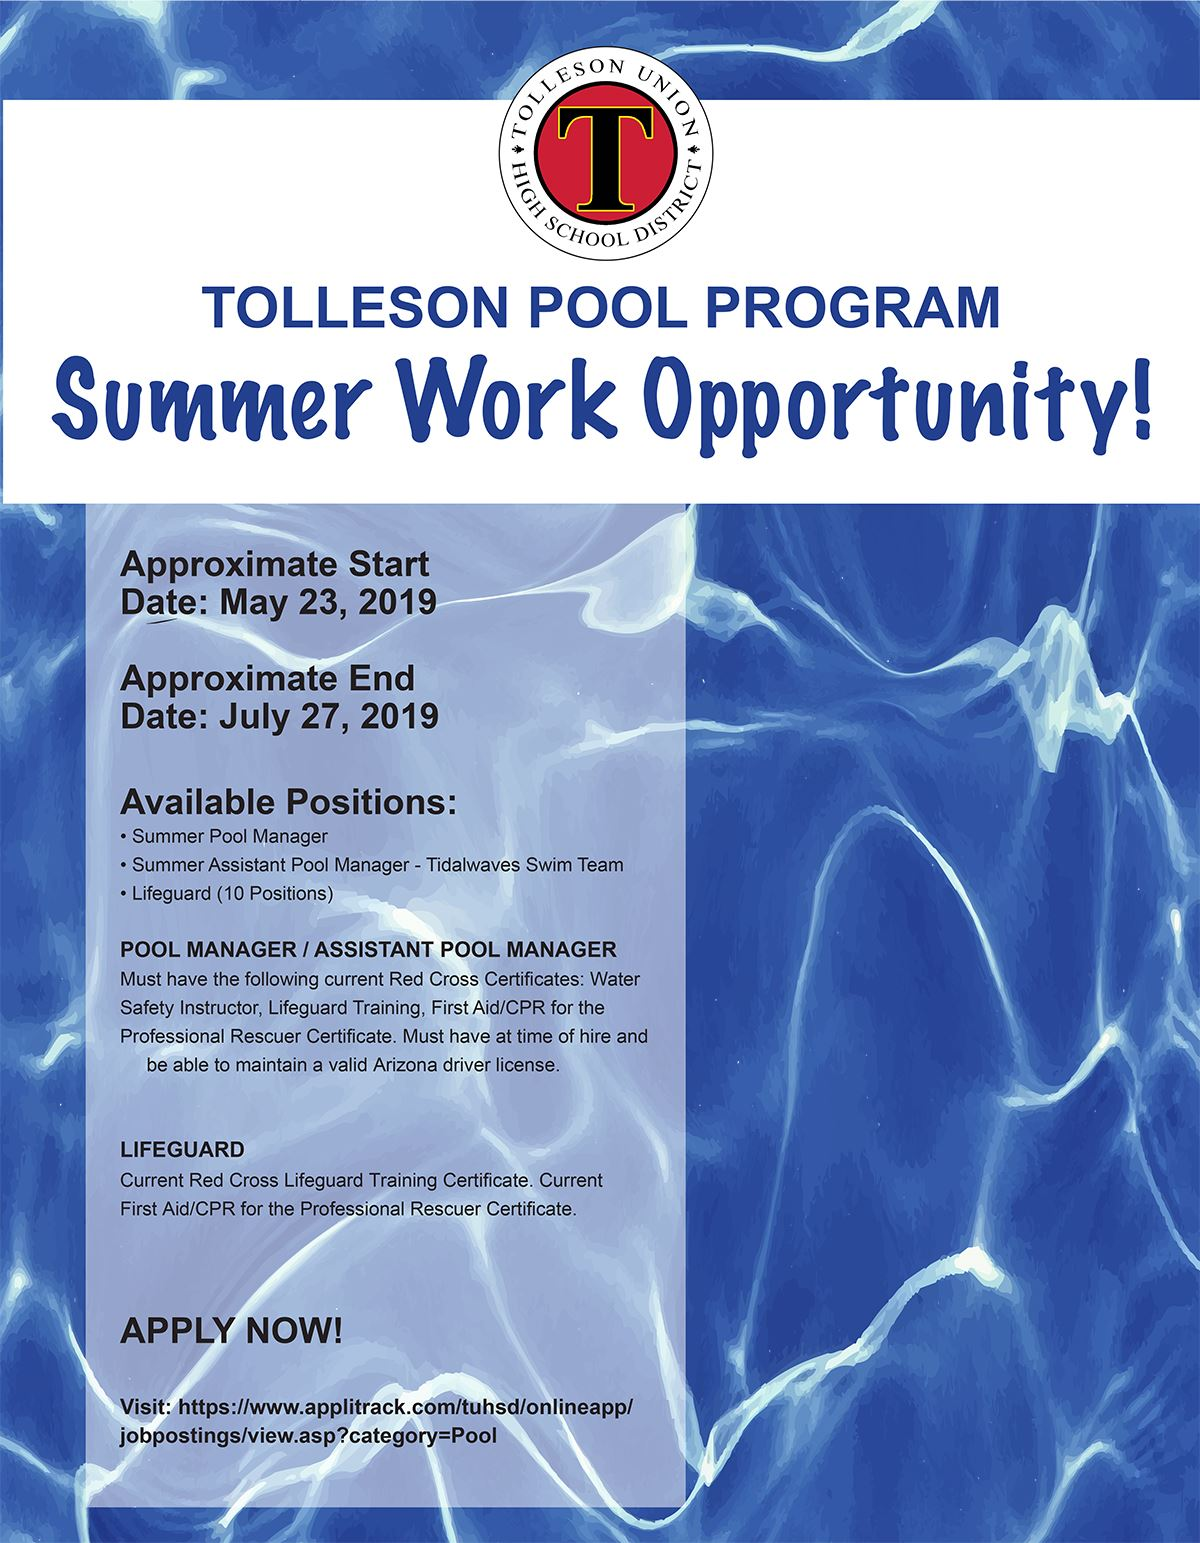 2019 TUHSD Pool Positions